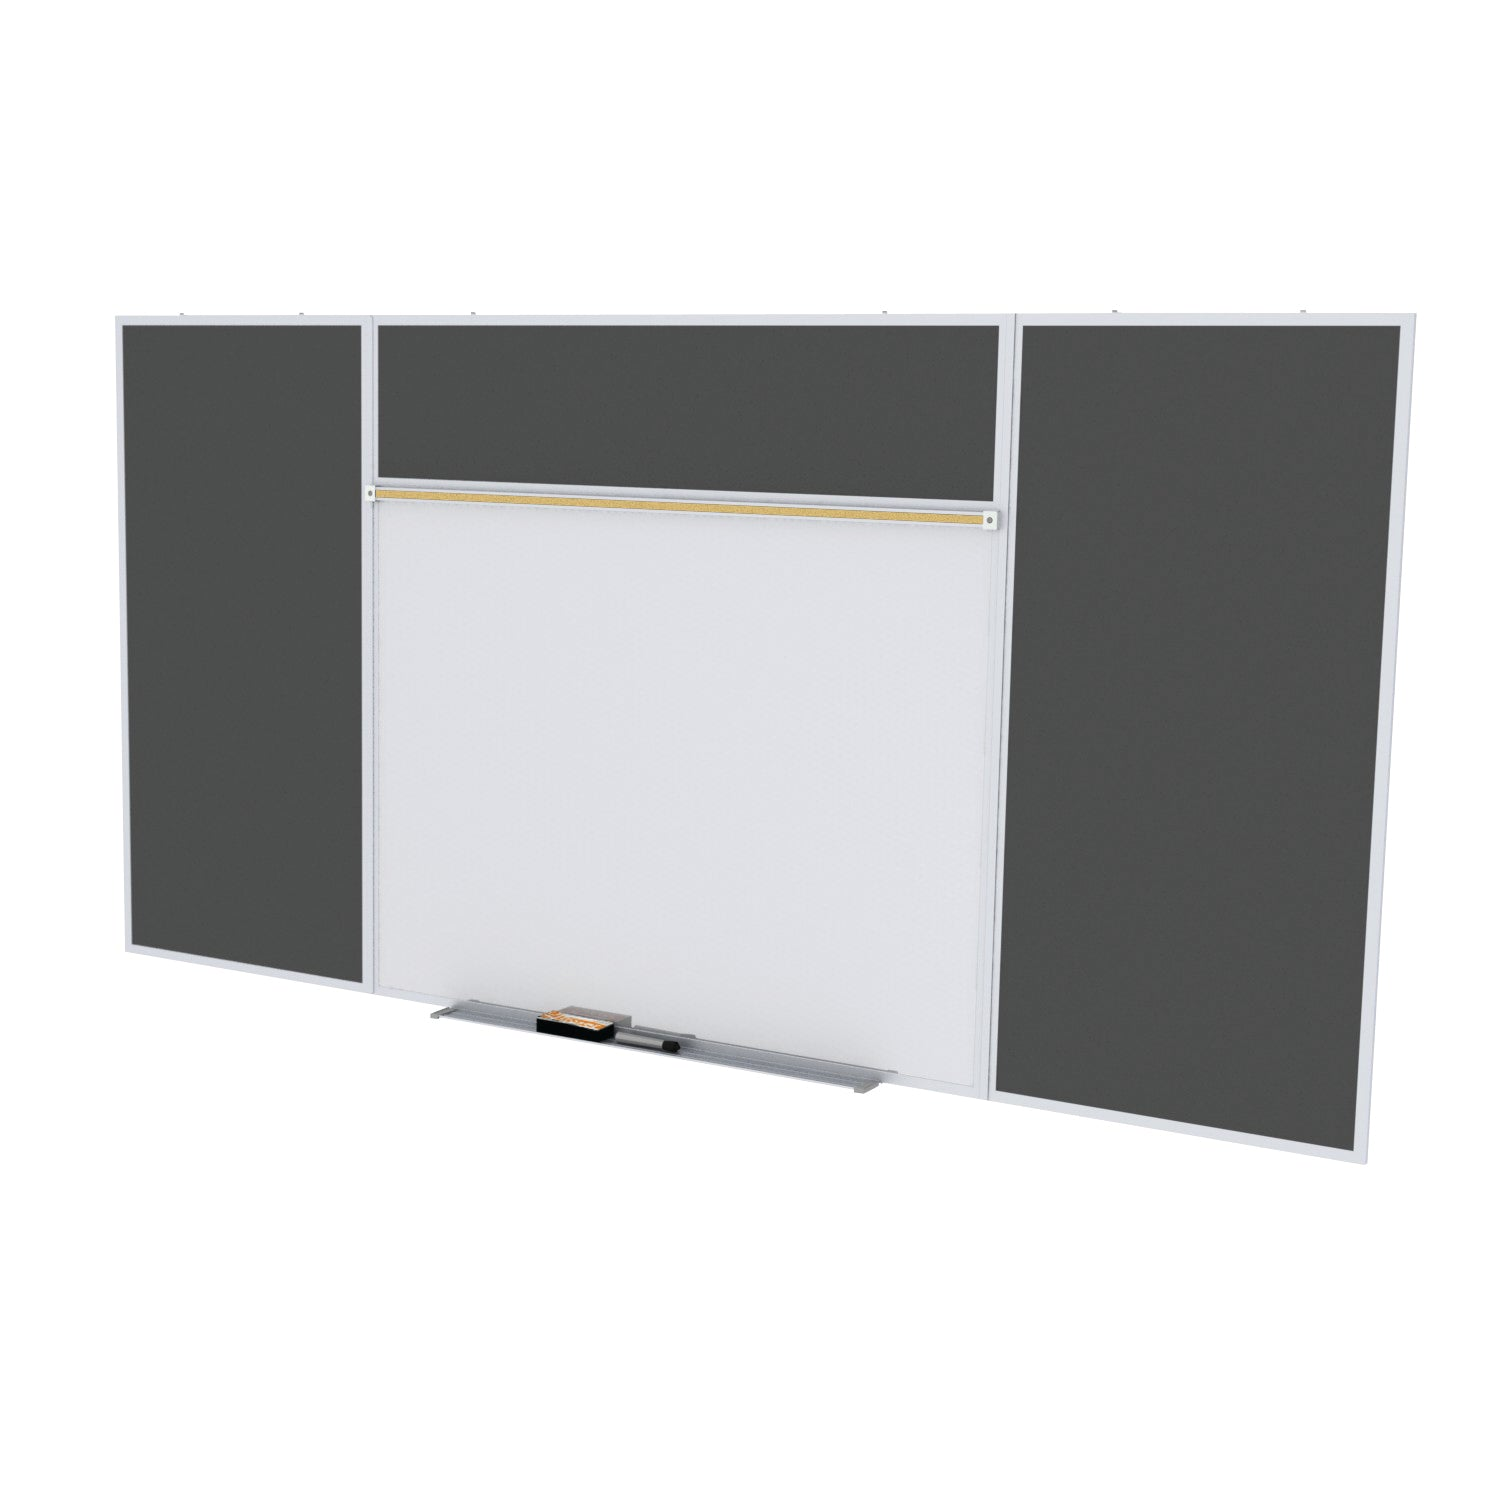 Style E Combination Unit-Porcelain Magnetic Whiteboard & BulletinBoard